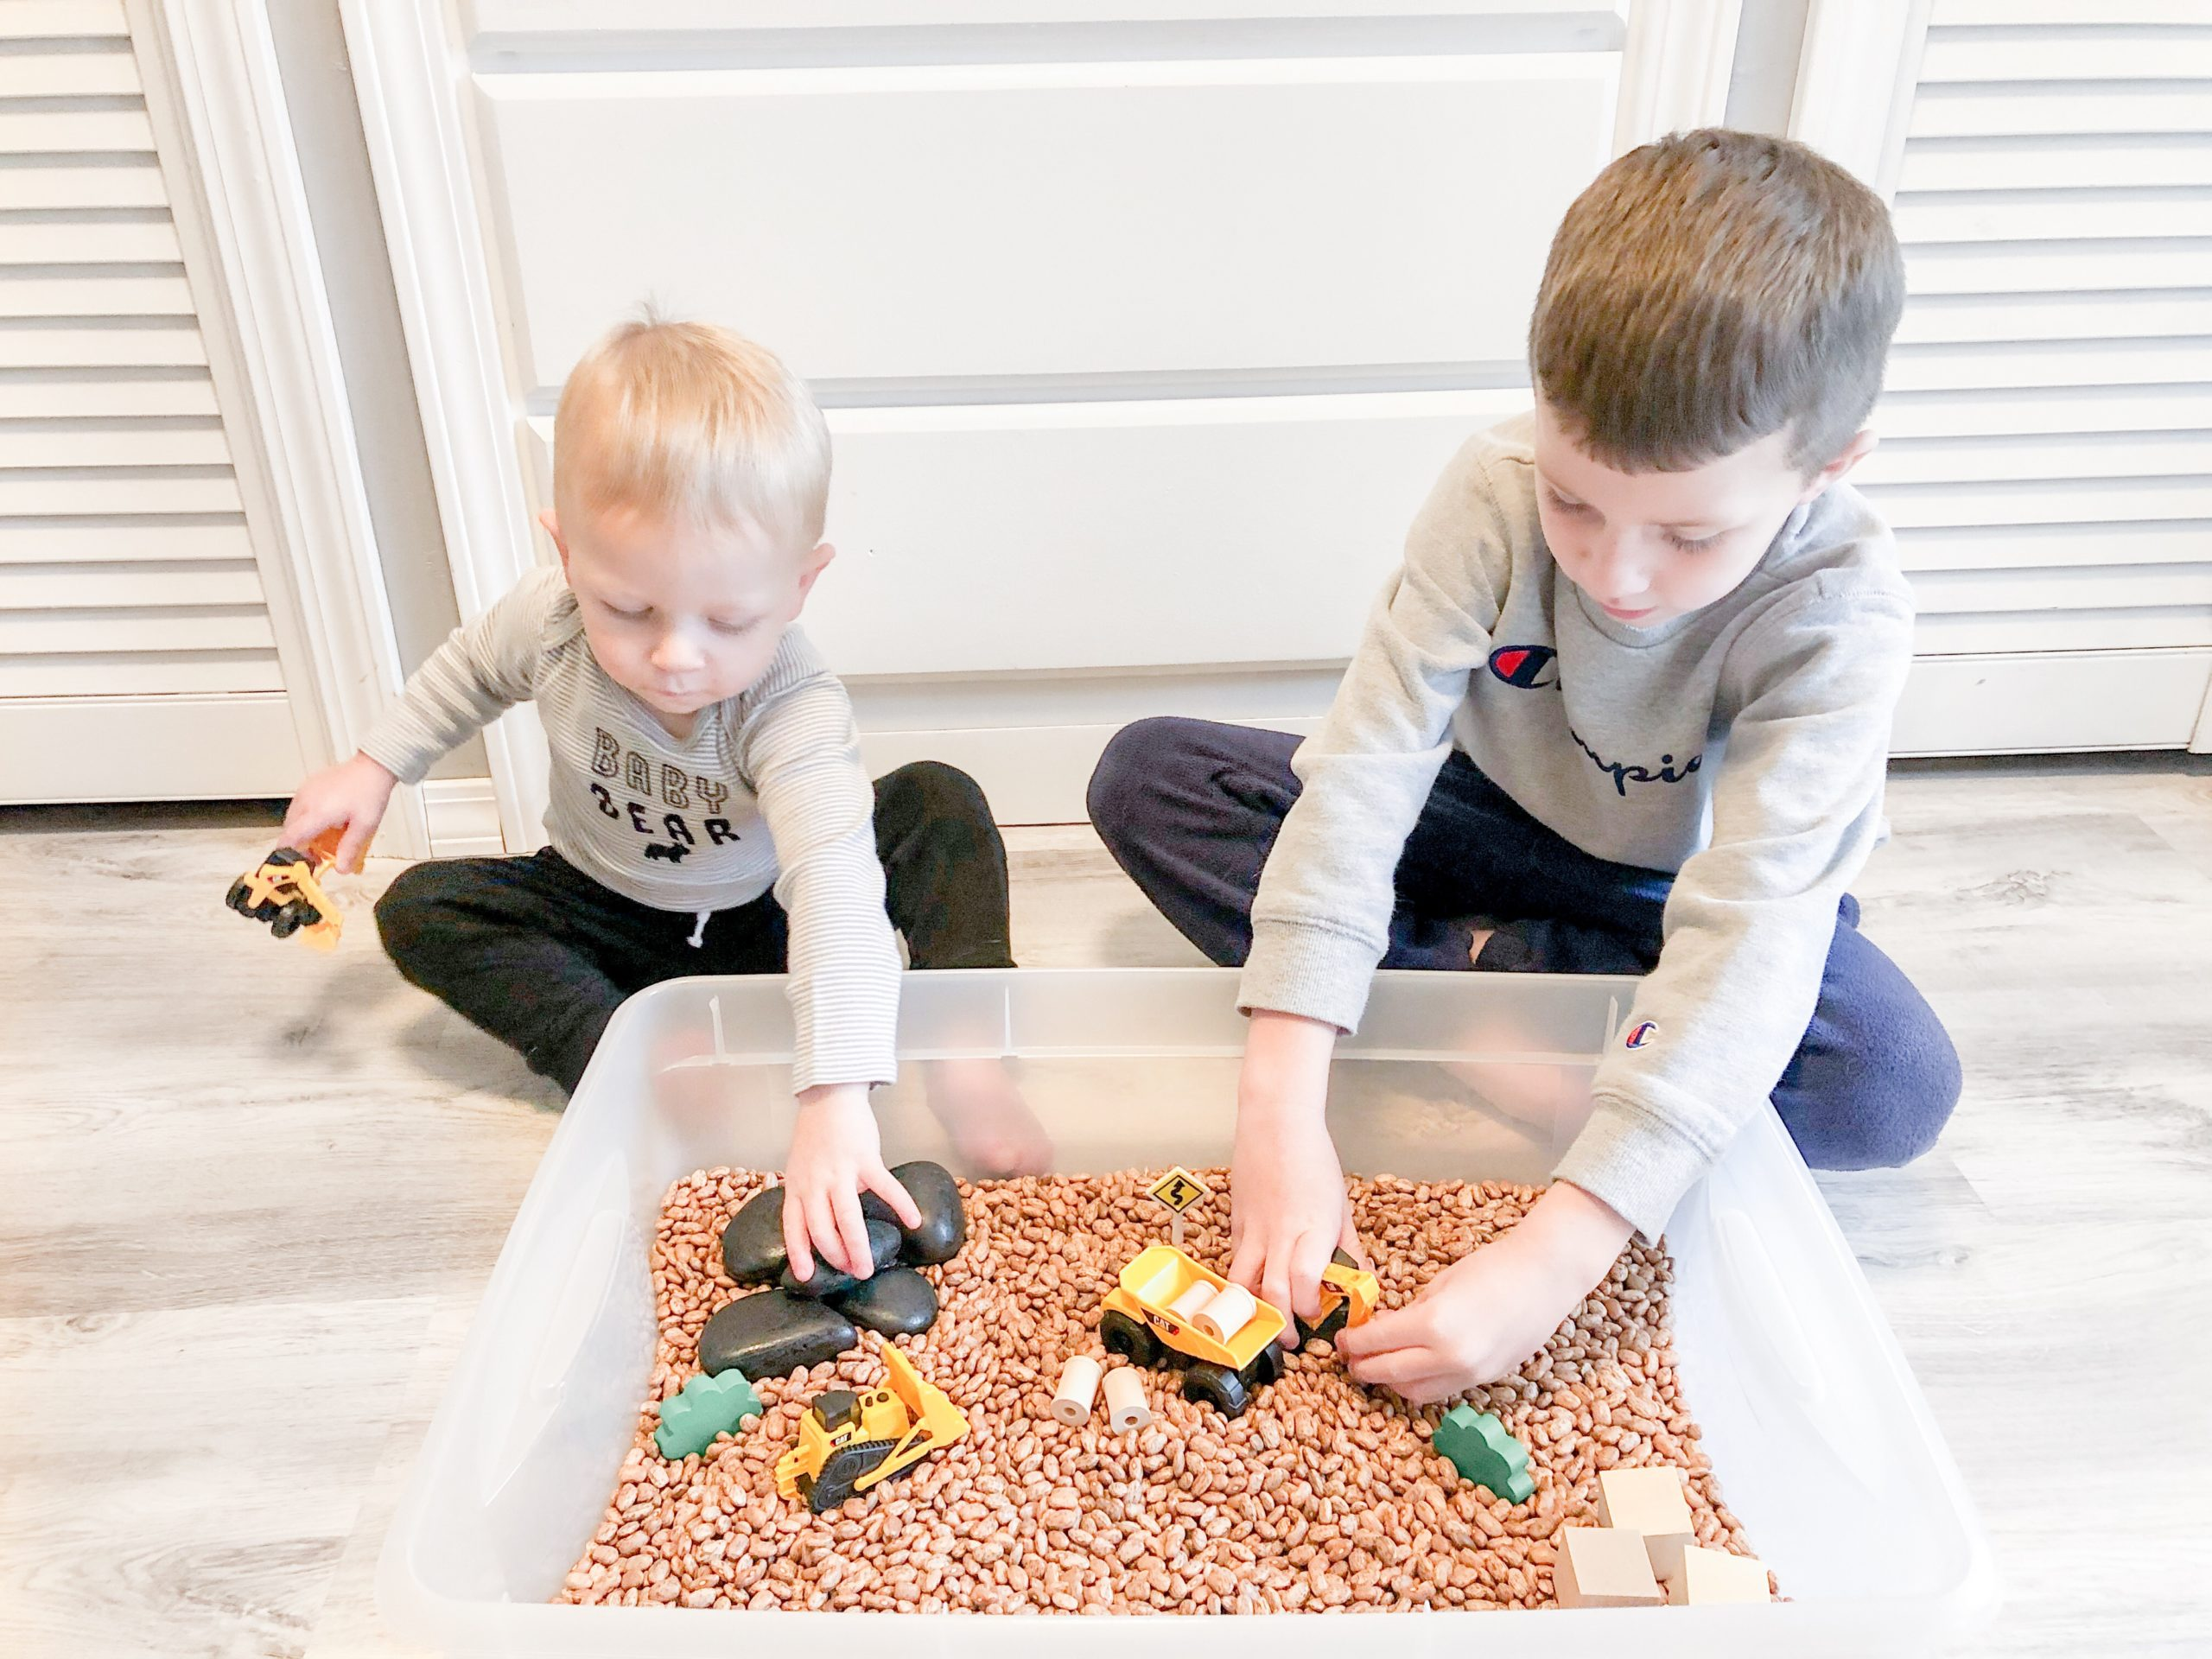 Sensory bin idea and instructions.  The construction zone theme is wonderful for all ages.